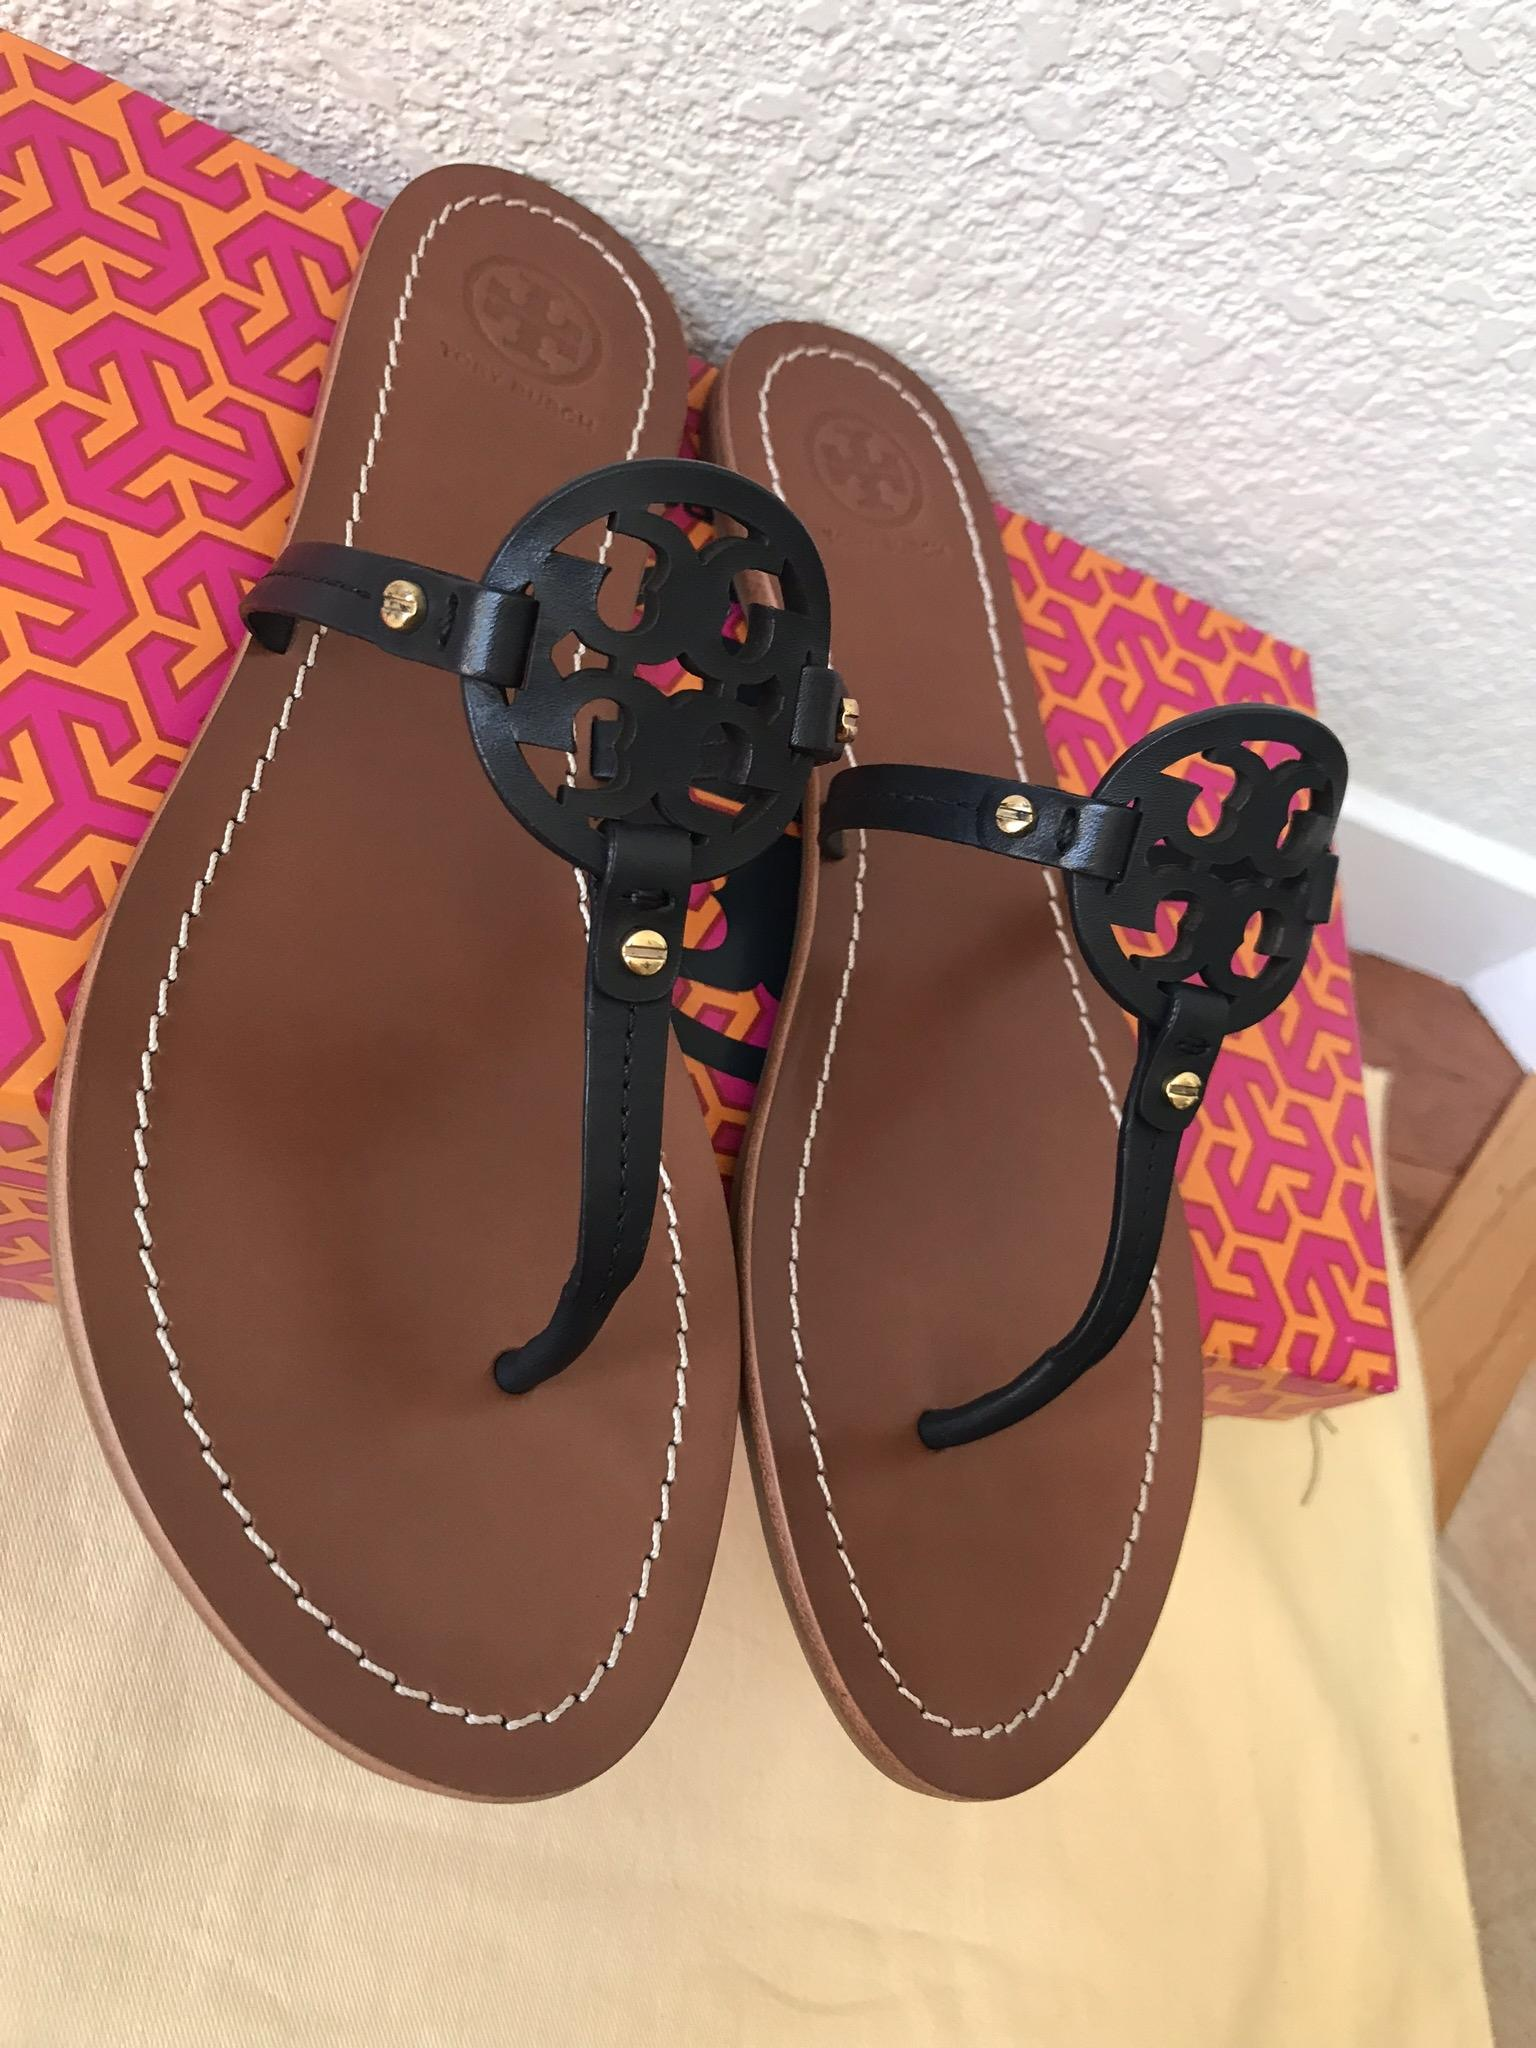 615ea2f9ffc0 ... Tory Burch Blue 7.5m Mini Miller Flat Sandals Size US US US 7.5 Regular  ...